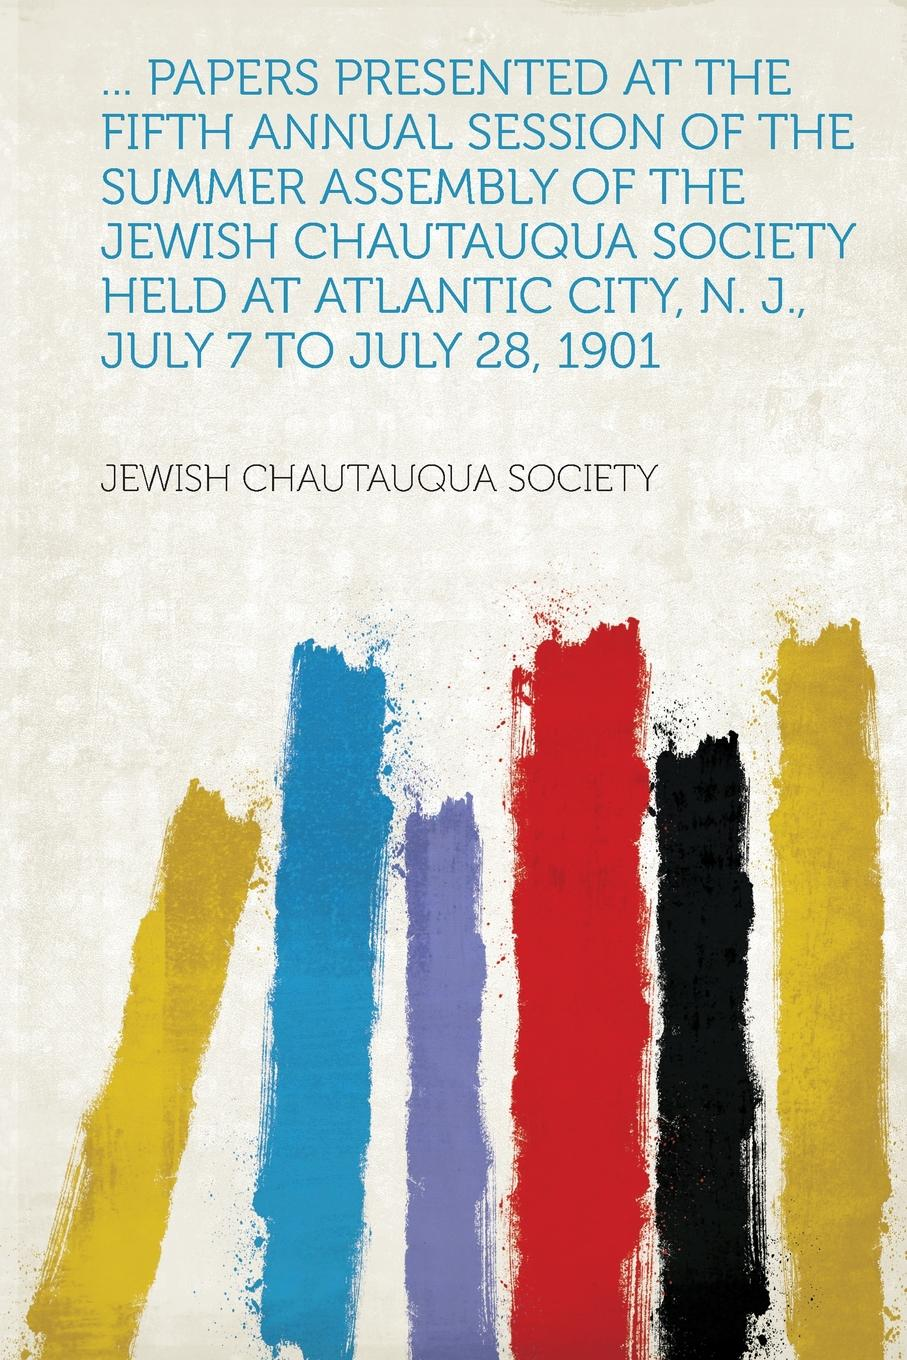 ... Papers Presented at the Fifth Annual Session of the Summer Assembly of the Jewish Chautauqua Society Held at Atlantic City, N. J., July 7 to July 28, 1901